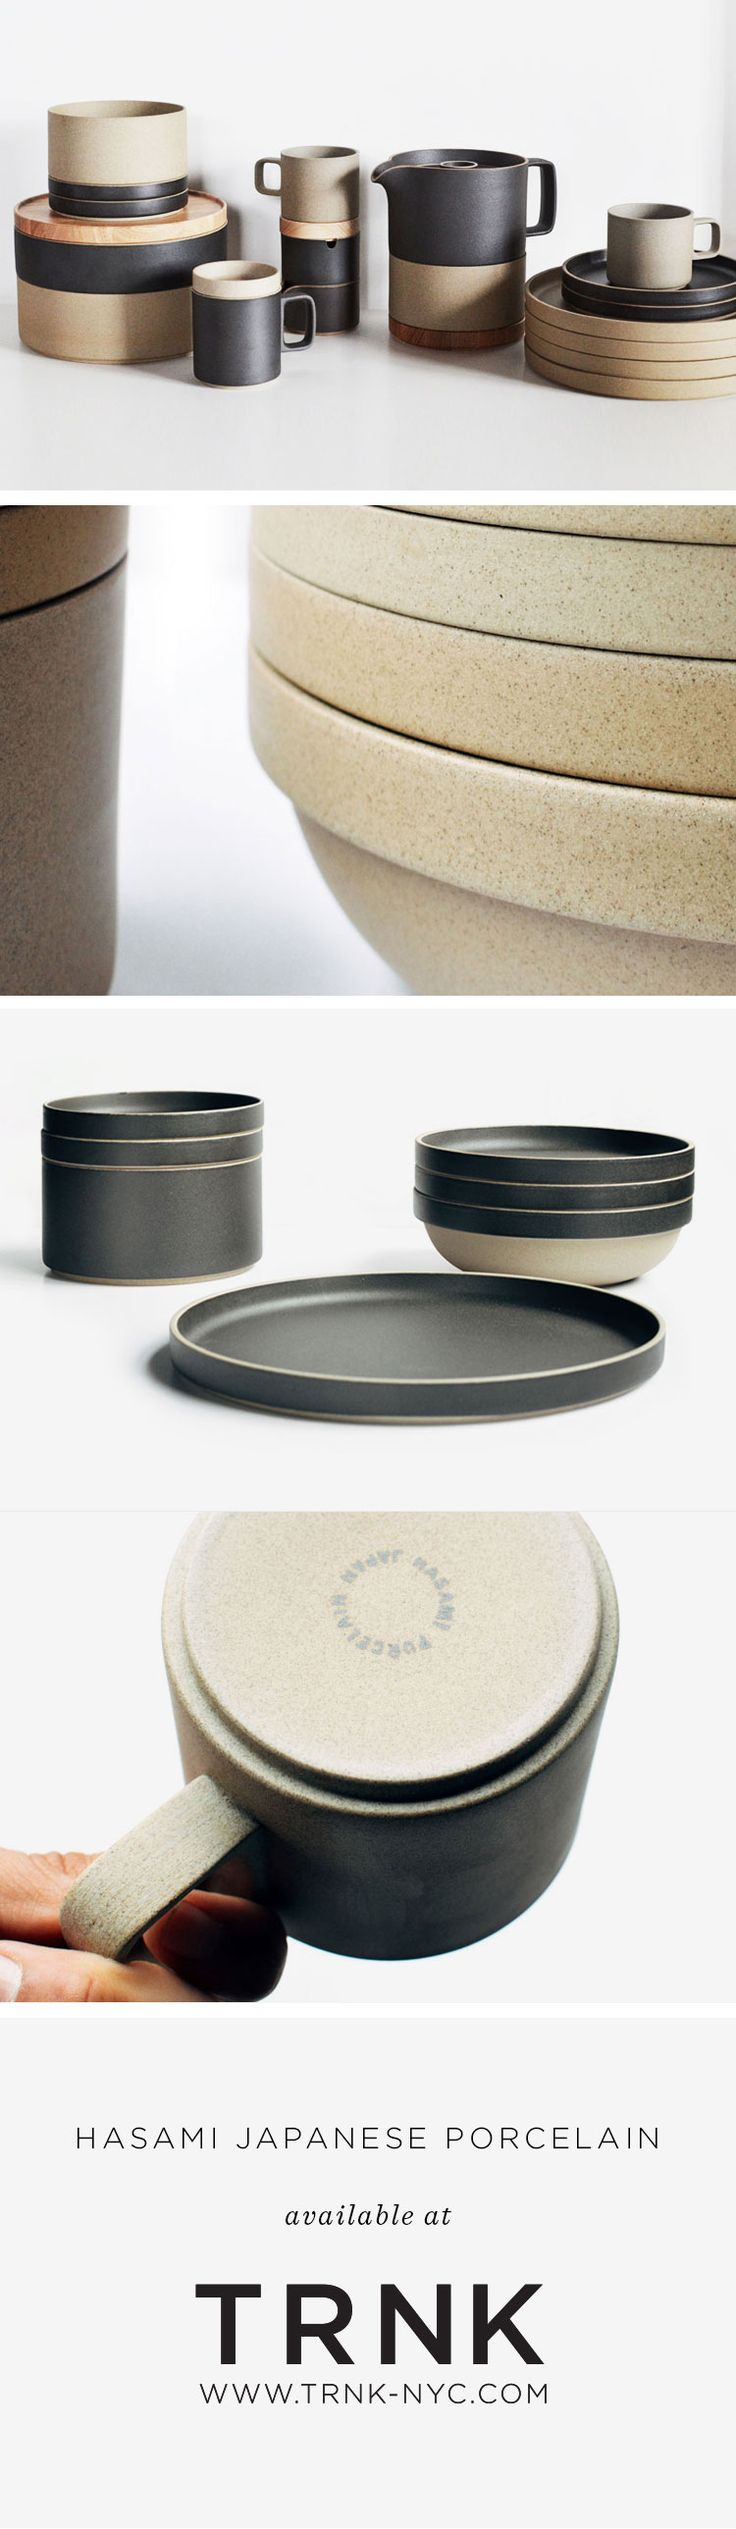 Modern, modular, and multi-functional - each piece is stack-able with pieces of the same diameter. Made in Hasami – a district in Nagasaki, Japan that's been producing ceramics for over 400 years.  Shop it at www.trnk-nyc.com!